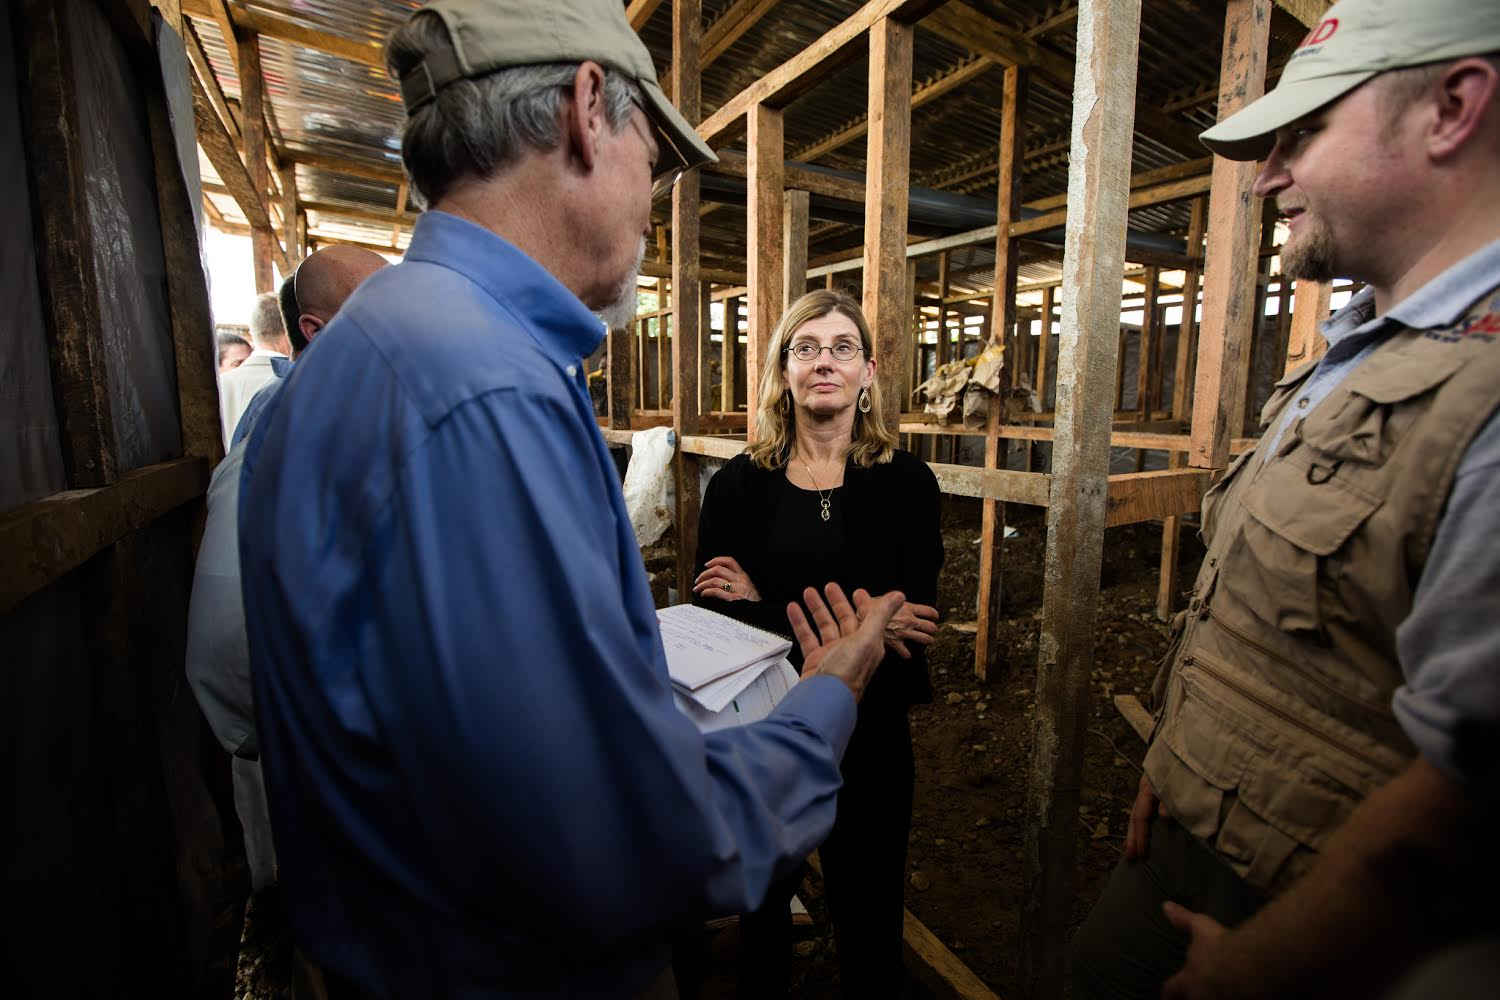 Bill Berger, who leads a USAID disaster assistance response team, briefs administrator Nancy Lindborg at an Ebola treatment unit construction site in Monrovia, Liberia, Oct. 1, 2014.